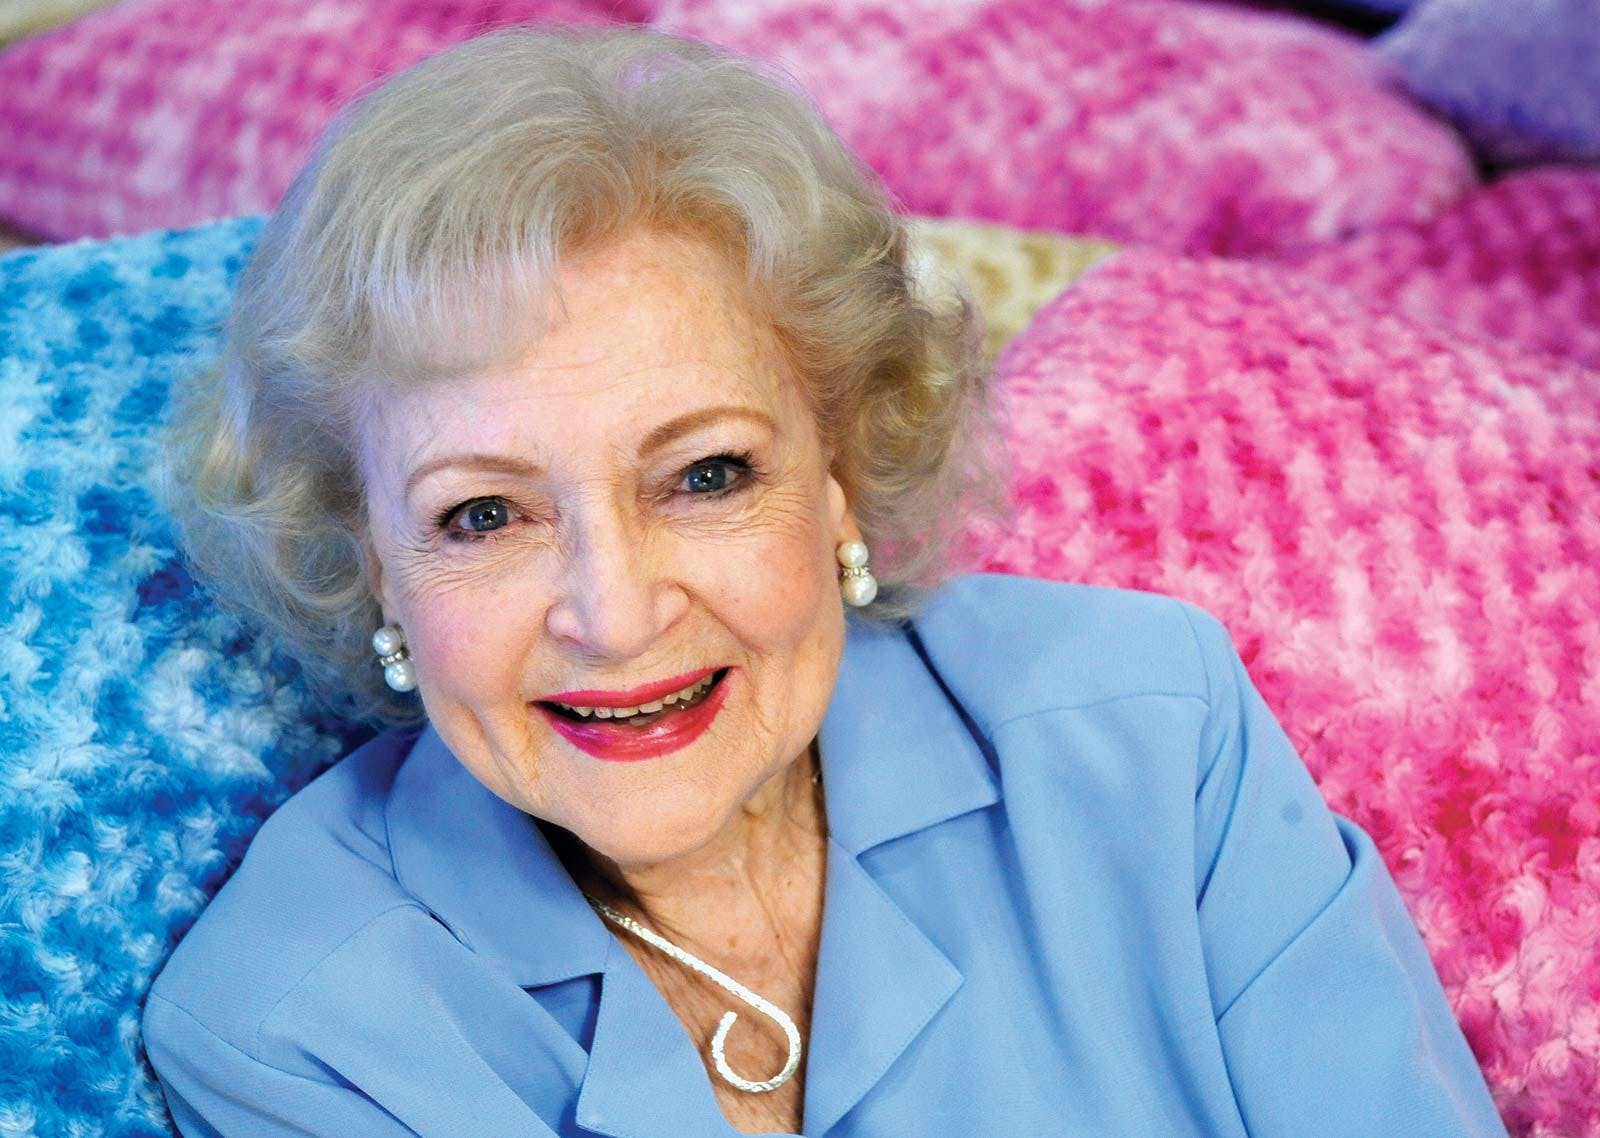 Our Golden Girl, Betty White is absolutely fine!